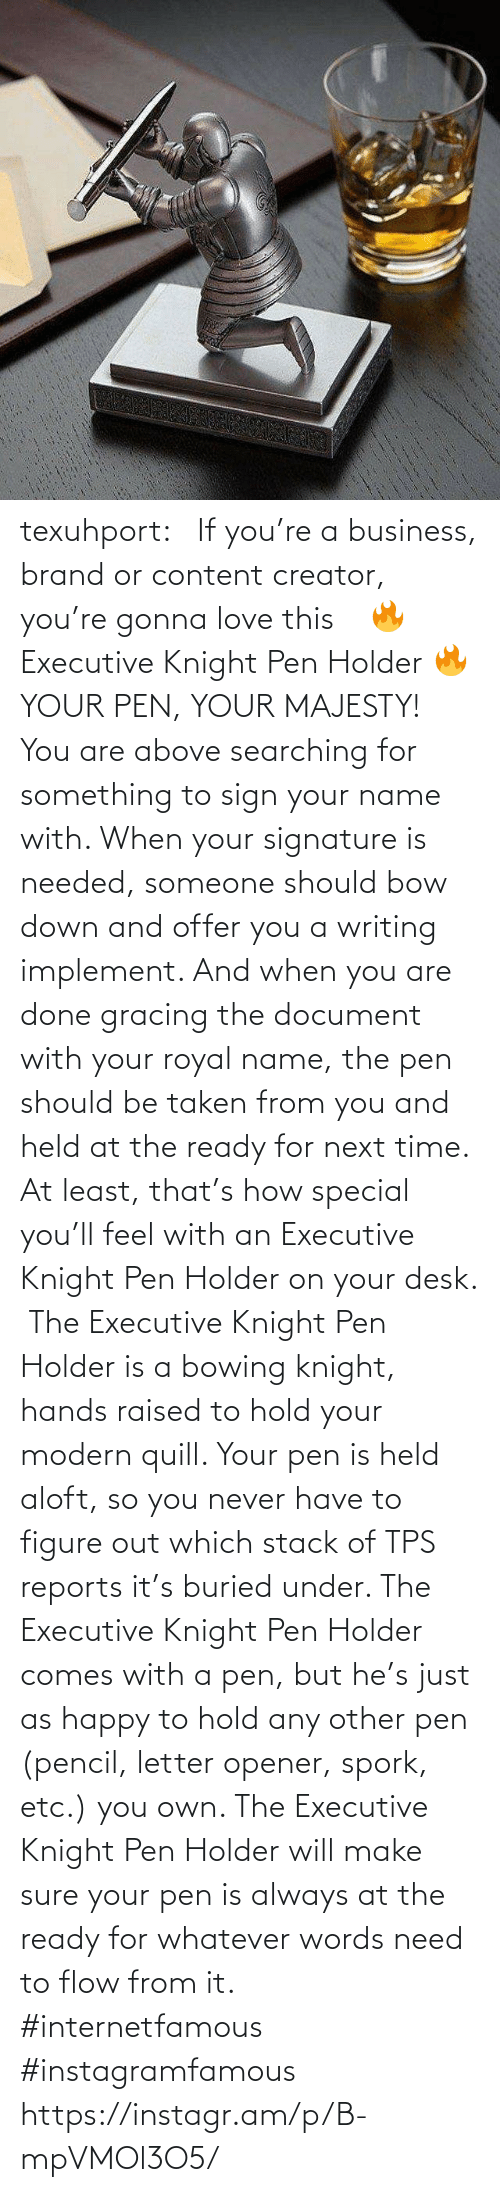 Content: texuhport:⎆ If you're a business, brand or content creator, you're gonna love this ⎆⁣ 🔥 Executive Knight Pen Holder 🔥⁣ YOUR PEN, YOUR MAJESTY!⁣ ⁣ You are above searching for something to sign your name with. When your signature is needed, someone should bow down and offer you a writing implement. And when you are done gracing the document with your royal name, the pen should be taken from you and held at the ready for next time. At least, that's how special you'll feel with an Executive Knight Pen Holder on your desk.⁣ ⁣ The Executive Knight Pen Holder is a bowing knight, hands raised to hold your modern quill. Your pen is held aloft, so you never have to figure out which stack of TPS reports it's buried under. The Executive Knight Pen Holder comes with a pen, but he's just as happy to hold any other pen (pencil, letter opener, spork, etc.) you own. The Executive Knight Pen Holder will make sure your pen is always at the ready for whatever words need to flow from it.⁣ #internetfamous  #instagramfamous https://instagr.am/p/B-mpVMOl3O5/